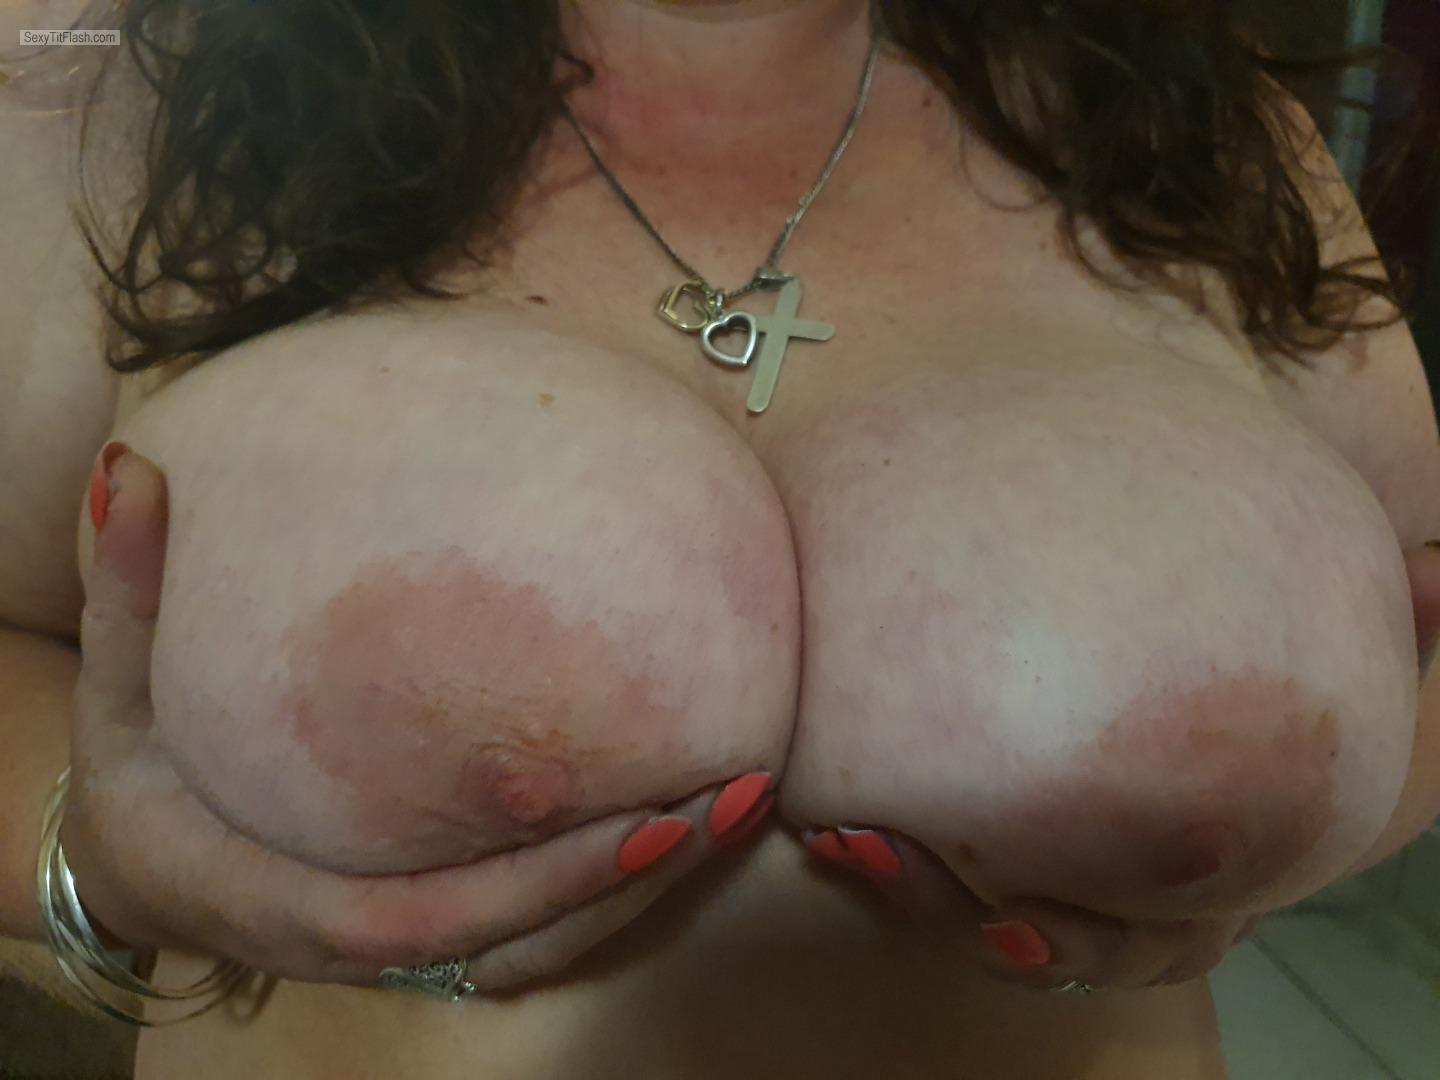 Tit Flash: Wife's Big Tits - What You Think from South Africa